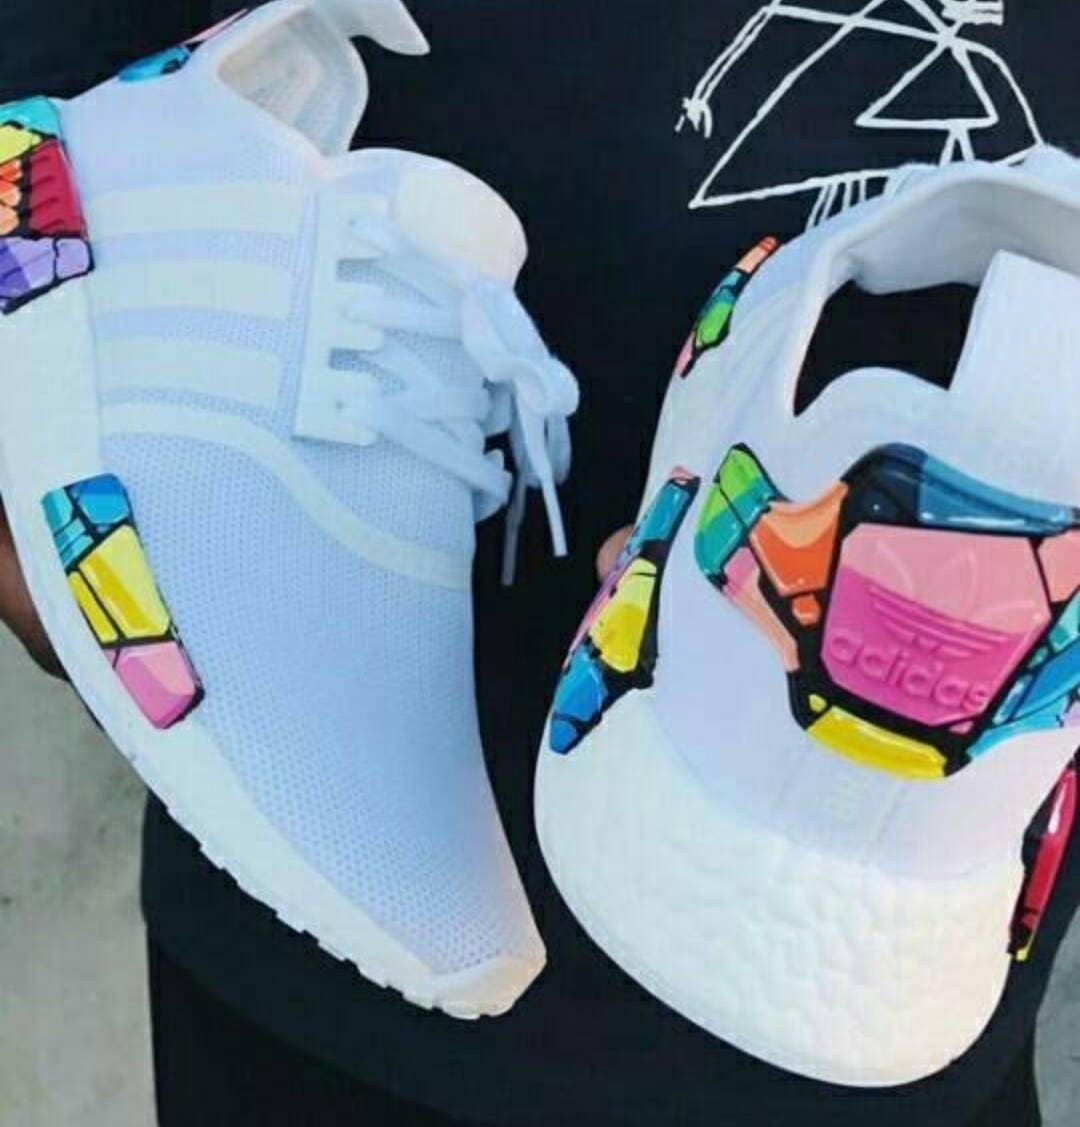 Adidas Nmd Painted Trainers Adidas Sneakers Originals Shoes Authentic Womens Trainers